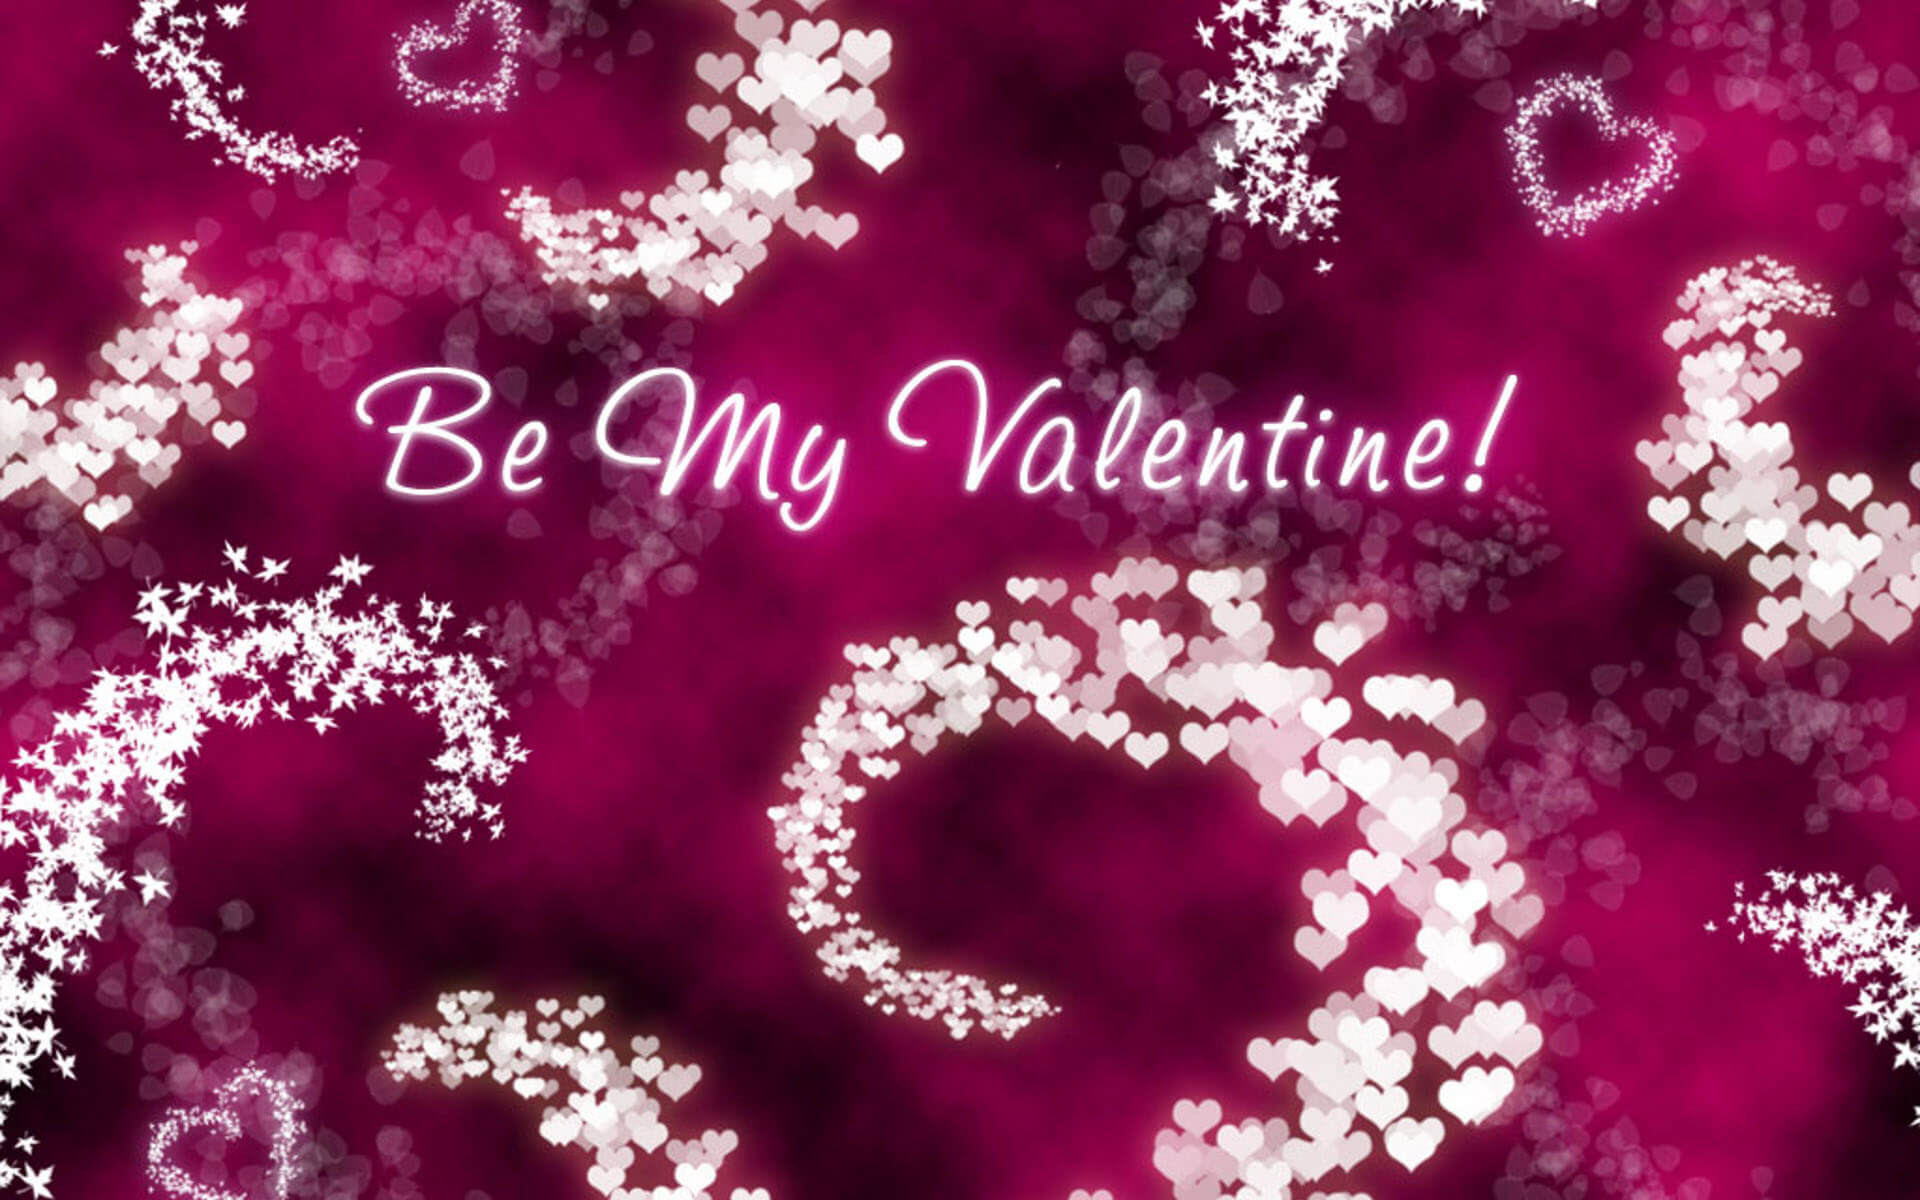 happy propose day be my valentine february 8th background hd wallpaper